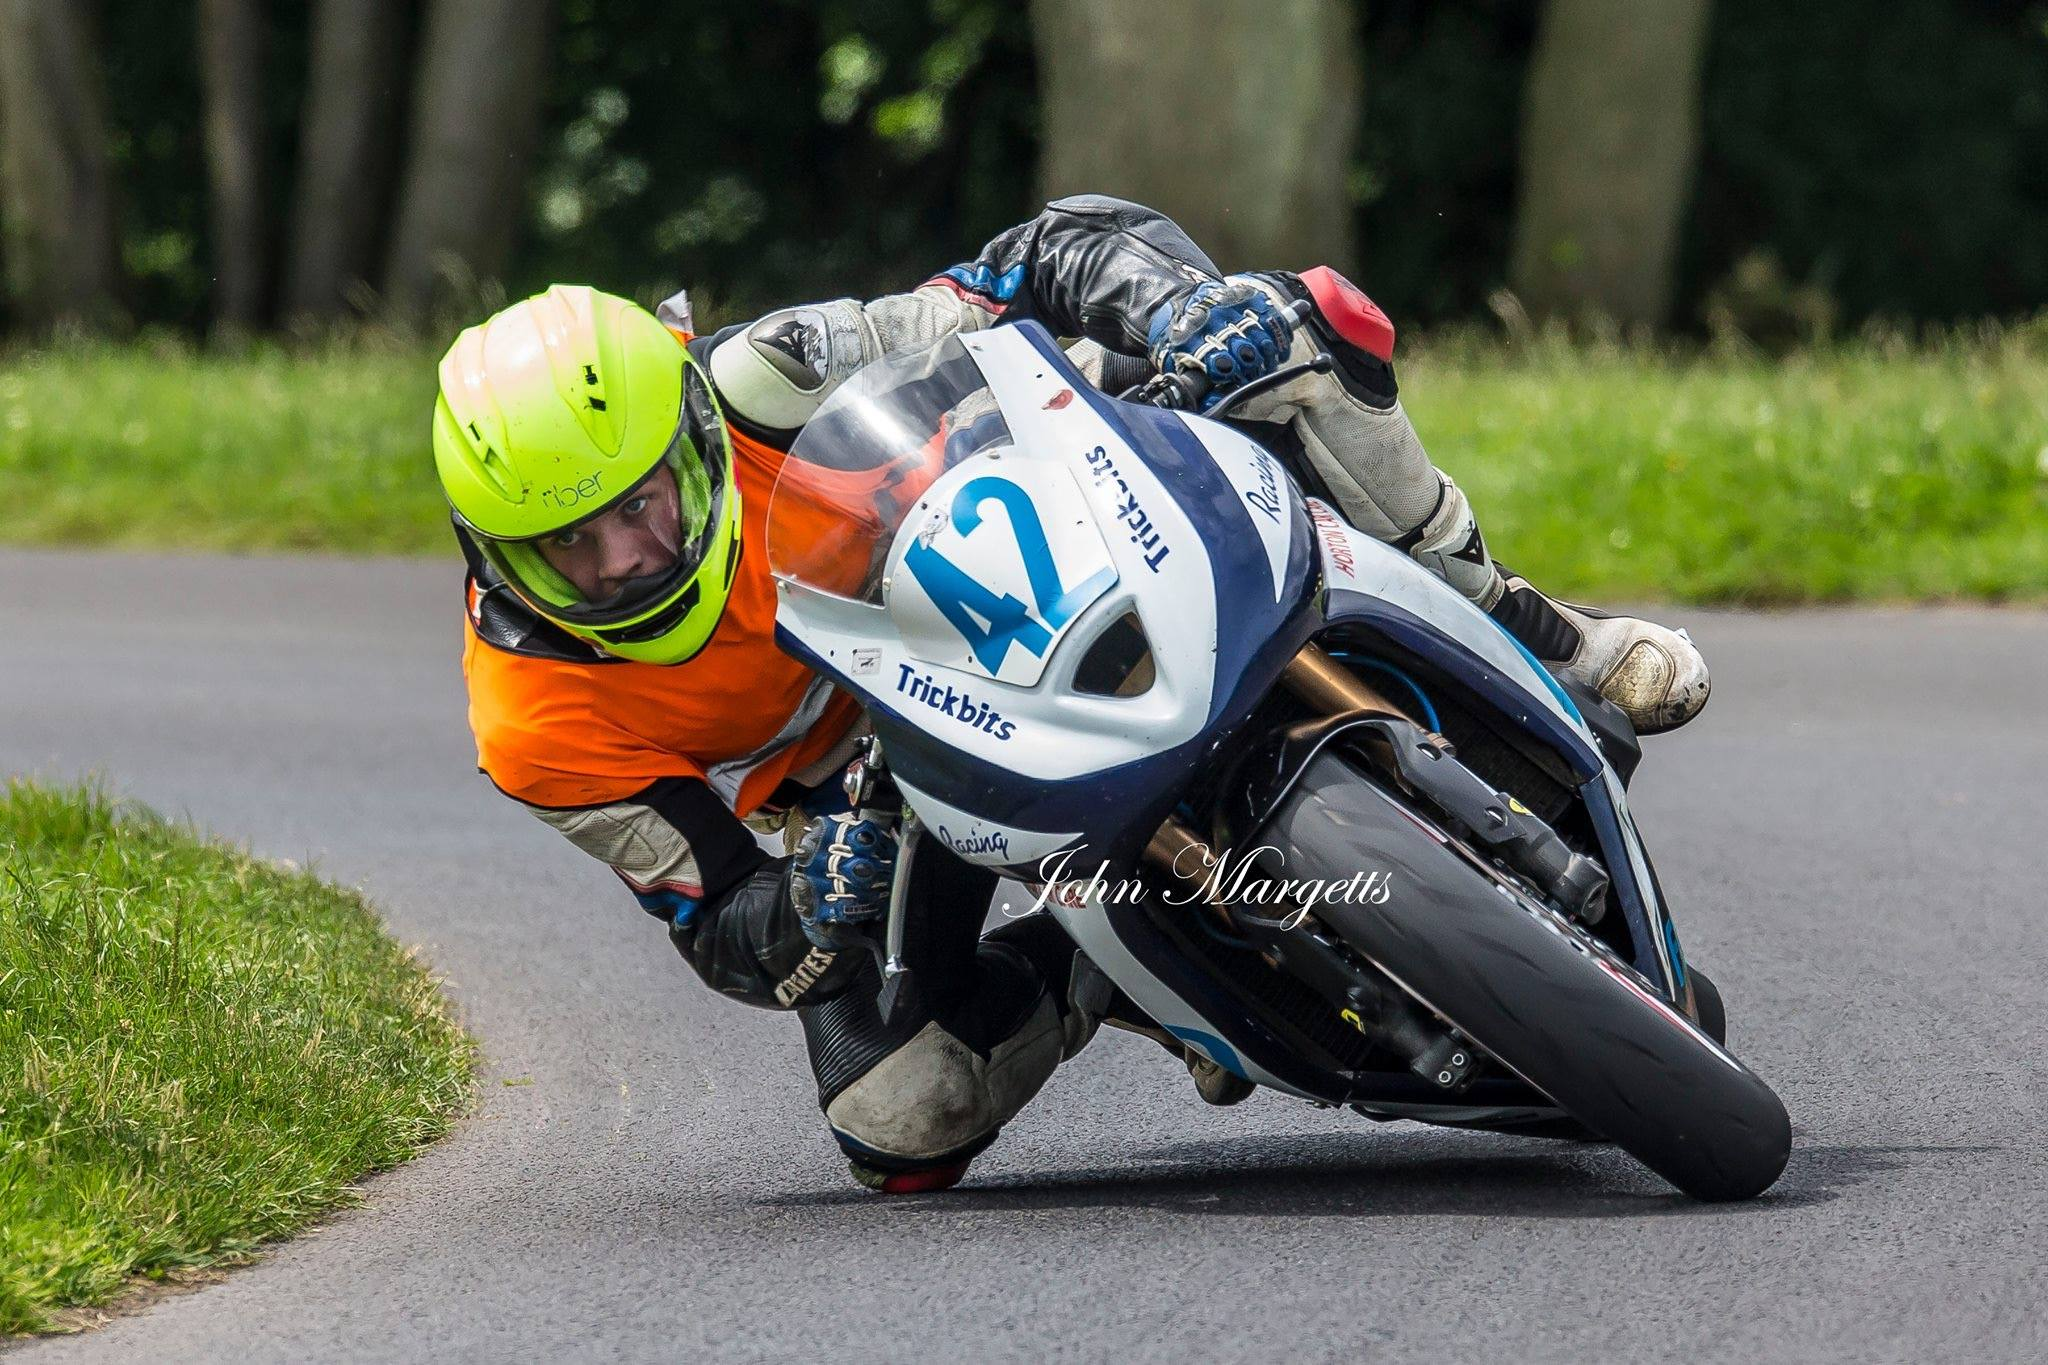 Dixon Heads To The Home Of Real Road Racing